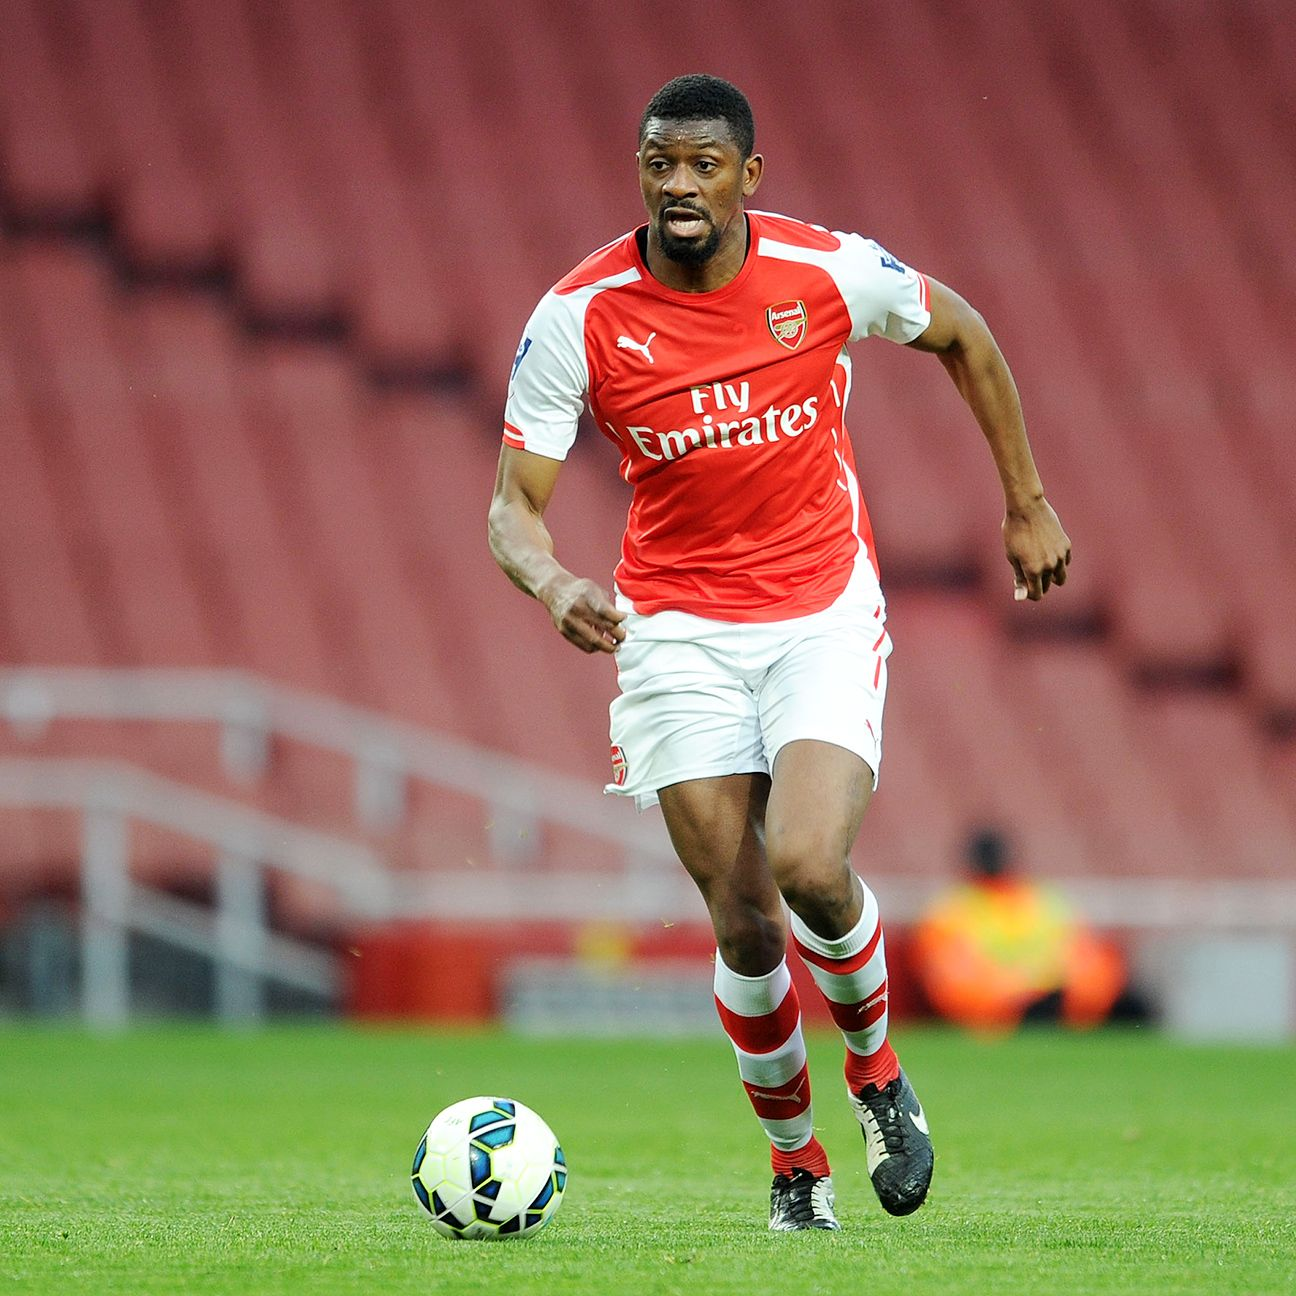 In the past three seasons, Abou Diaby has appeared in just 12 Premier League matches.